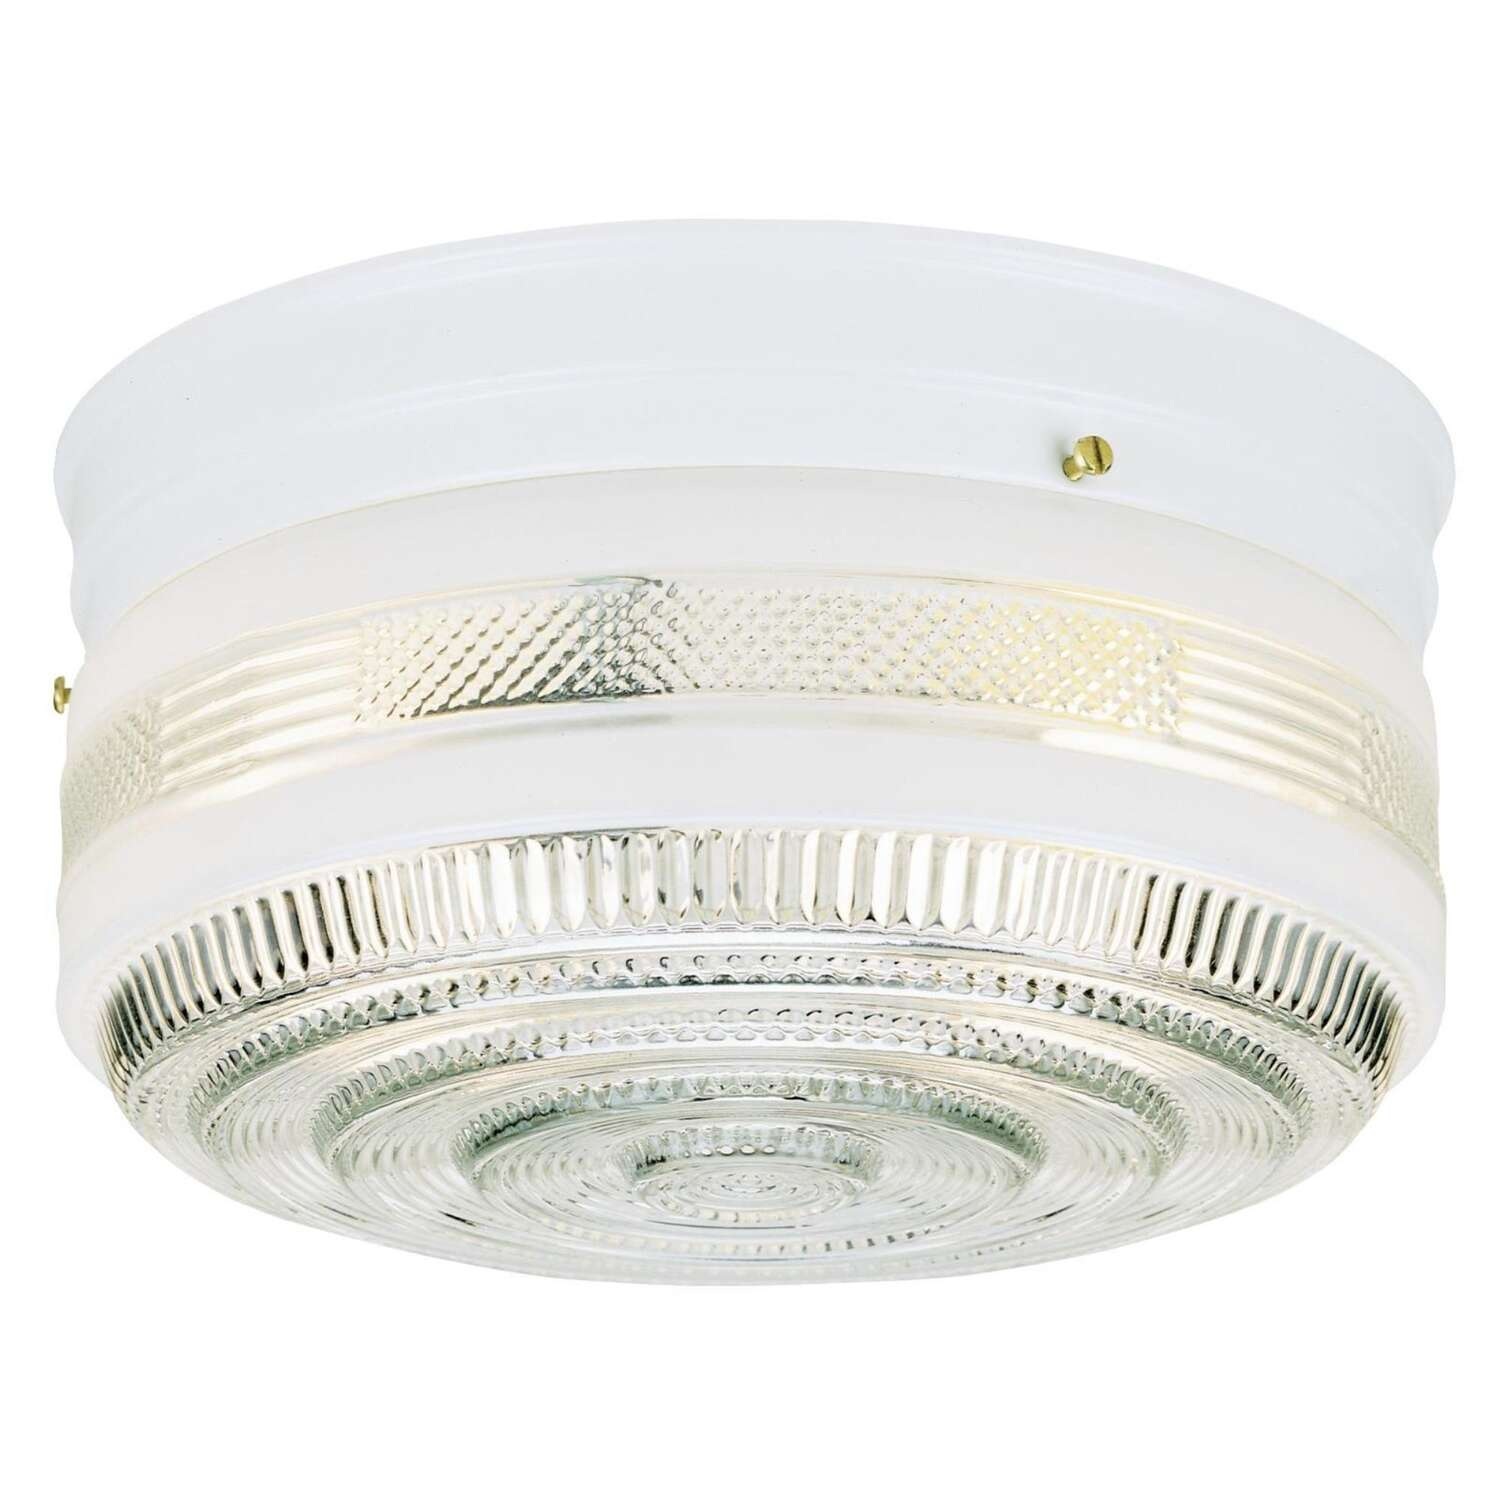 Westinghouse  5-1/4 in. H x 10-3/4 in. W x 10.75 in. L Ceiling Light